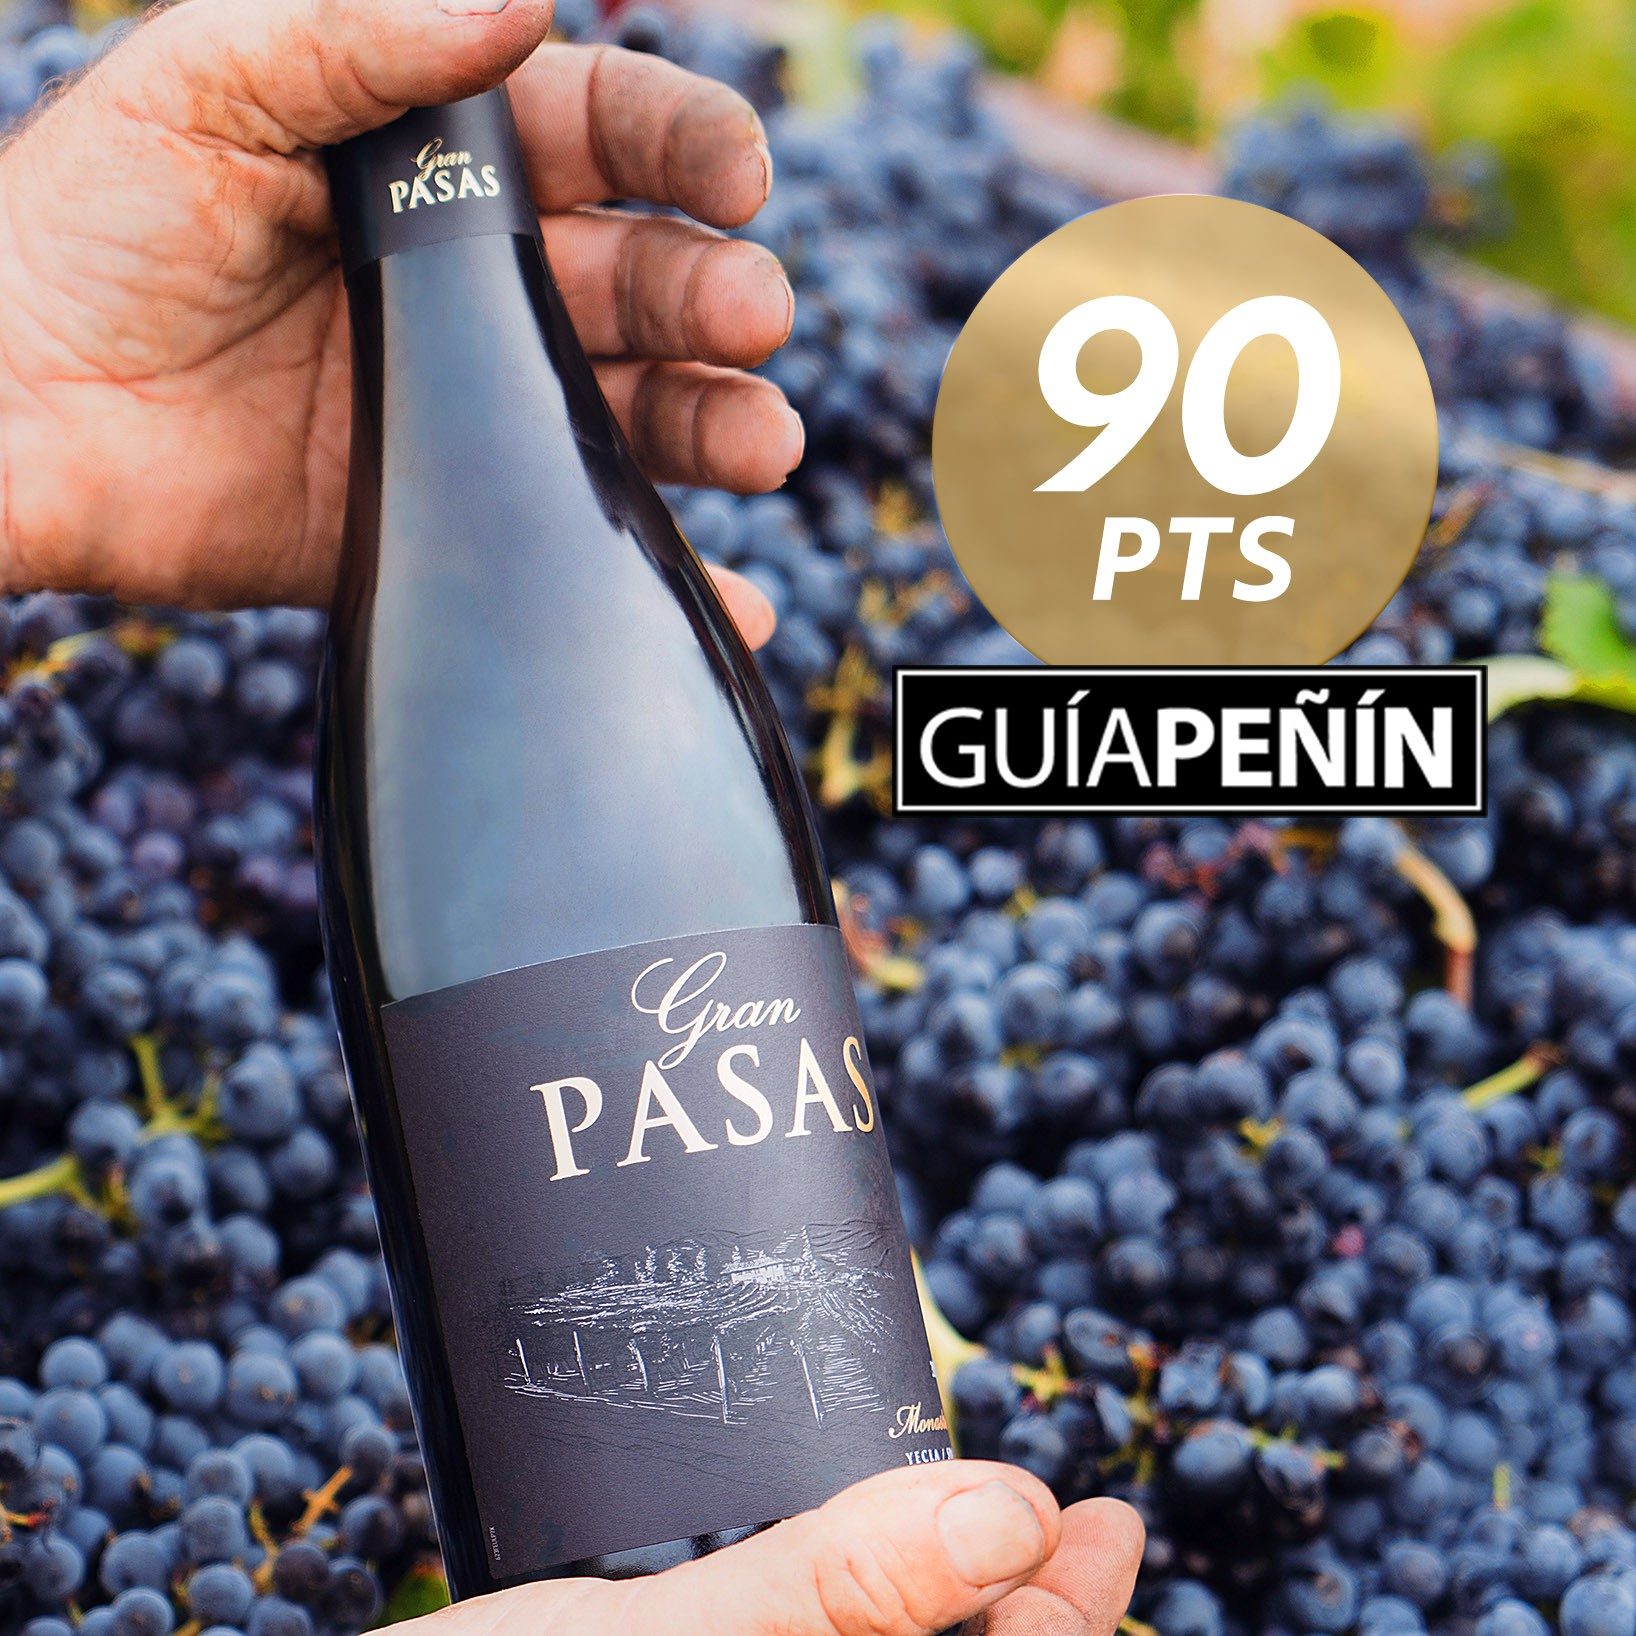 Gran Pasas gets 90 Peñín points